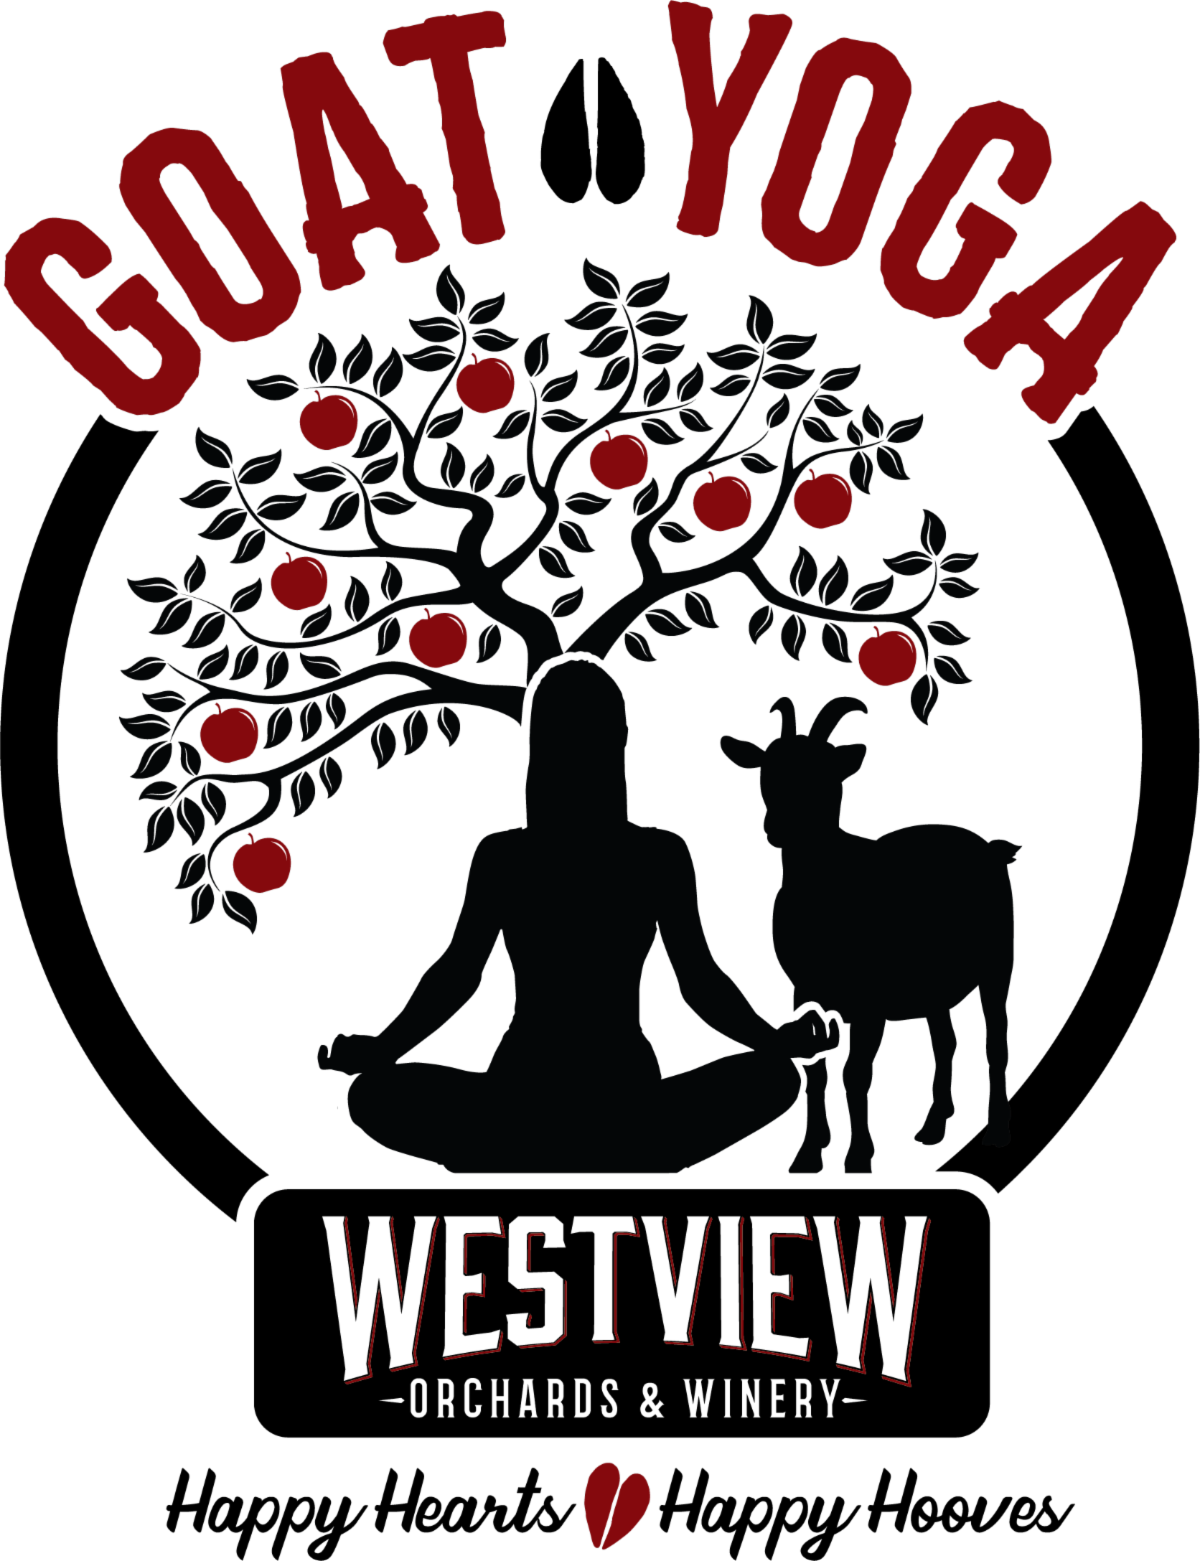 goat_yoga_westview_final-01.png